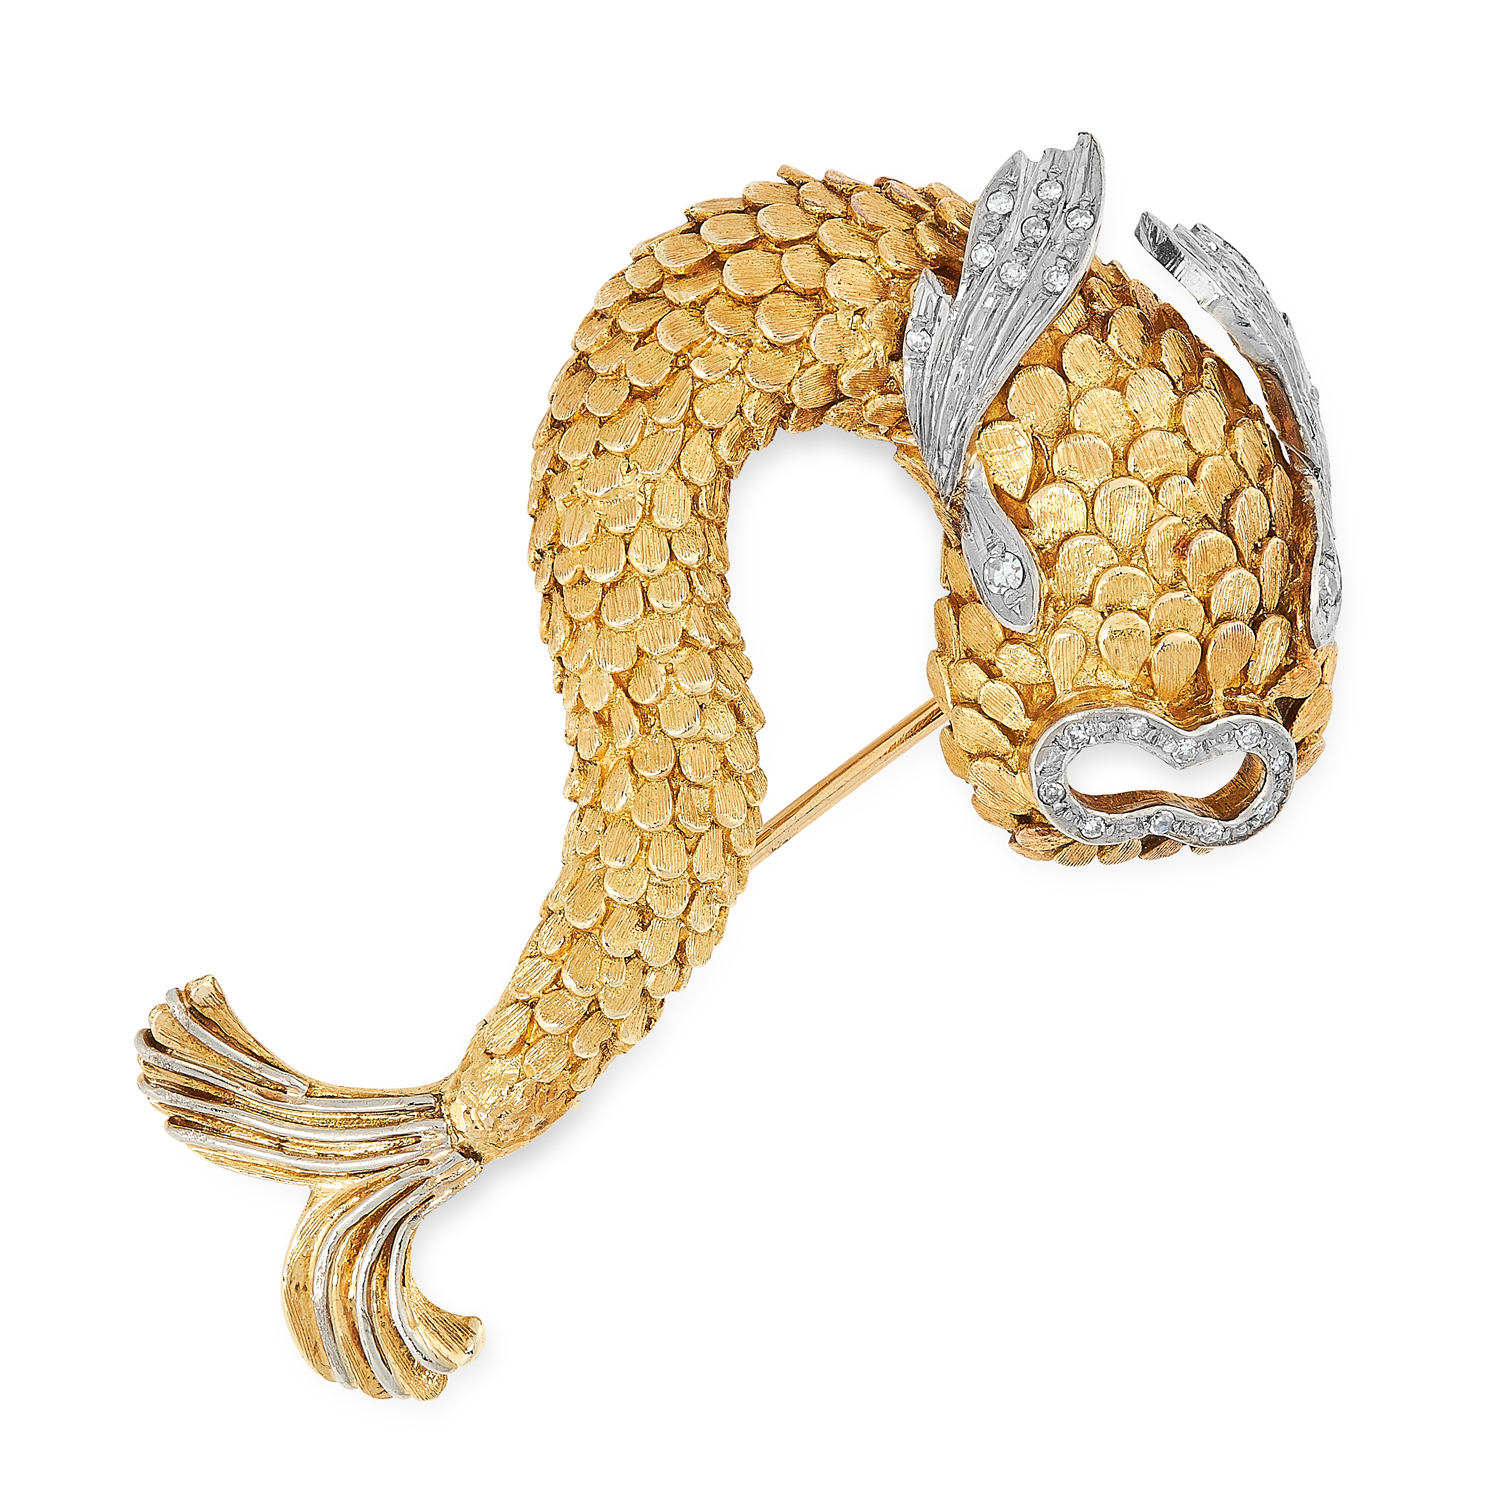 A VINTAGE DIAMOND DOLPHIN BROOCH, ILIAS LALAOUNIS CIRCA 1970 in high carat yellow gold, designed